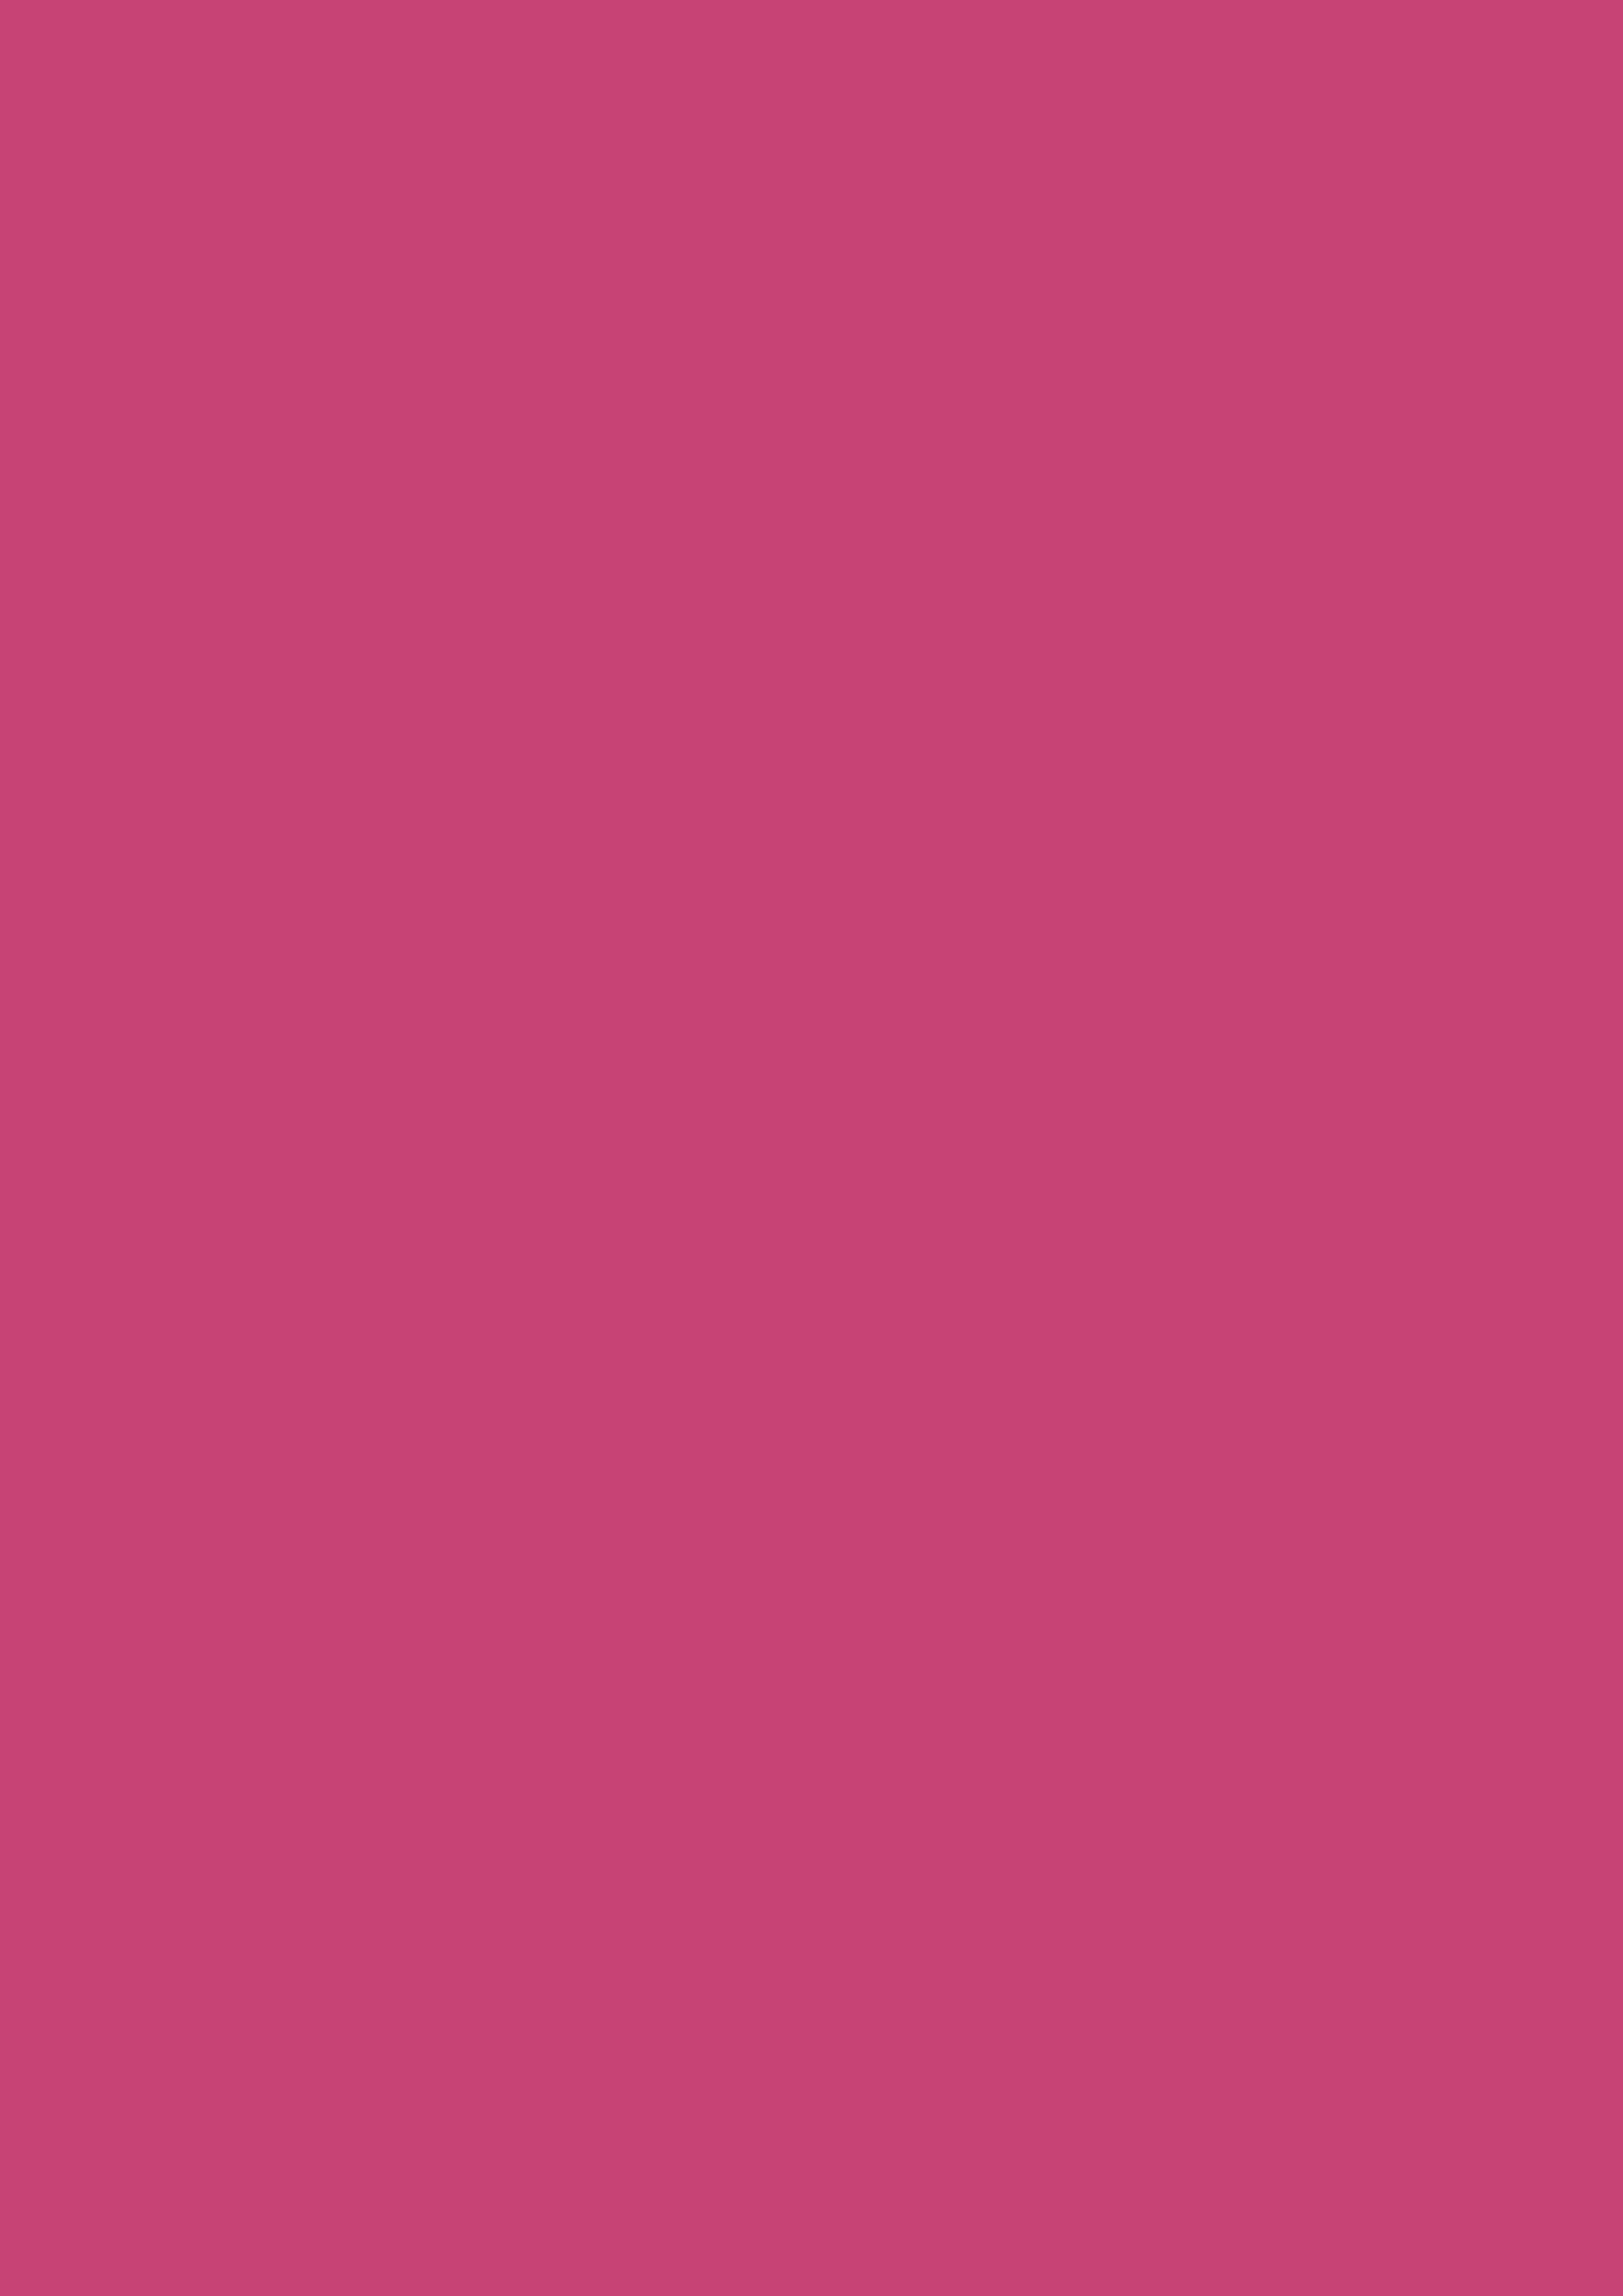 2480x3508 Fuchsia Rose Solid Color Background